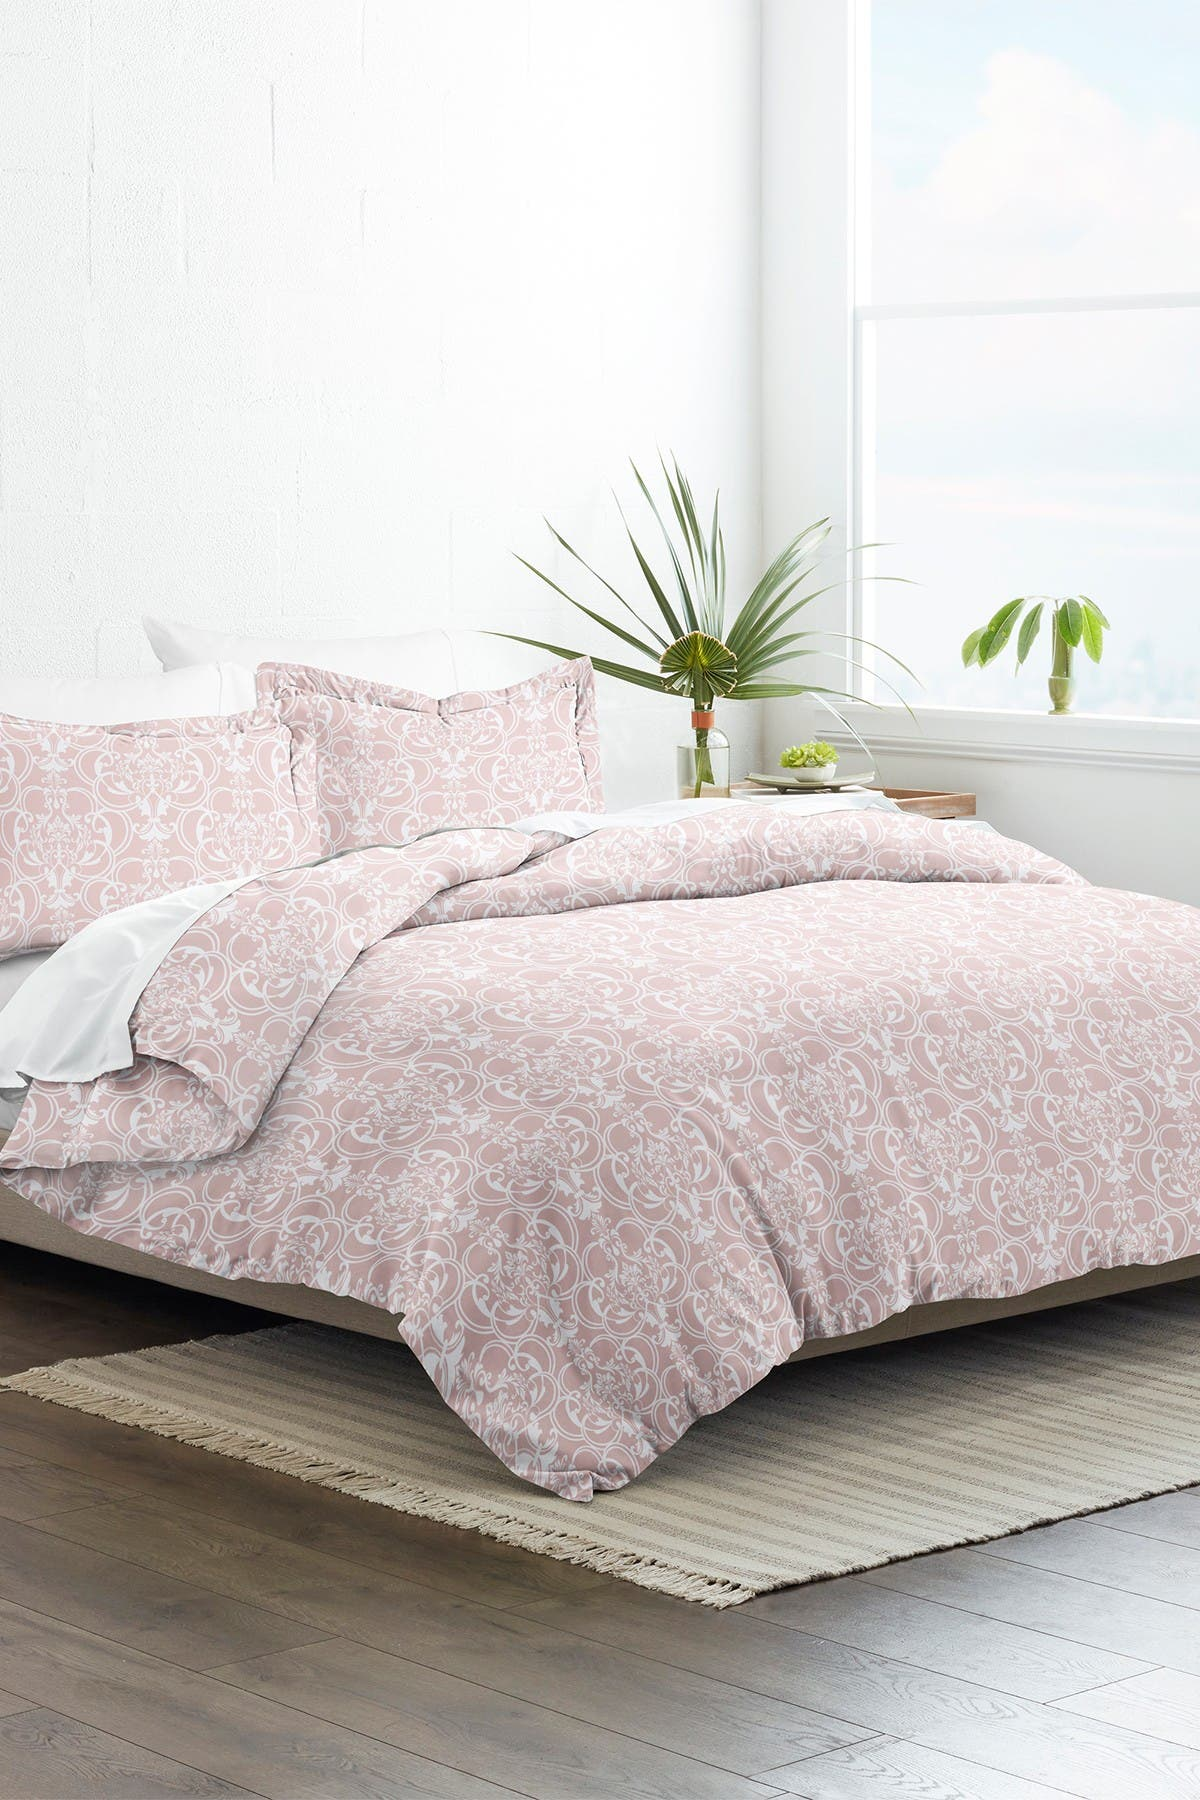 Image of IENJOY HOME Home Collection Premium Ultra Soft Romantic Damask Pattern 3-Piece Twin/Twin Extra Long Duvet Cover Set - Pink